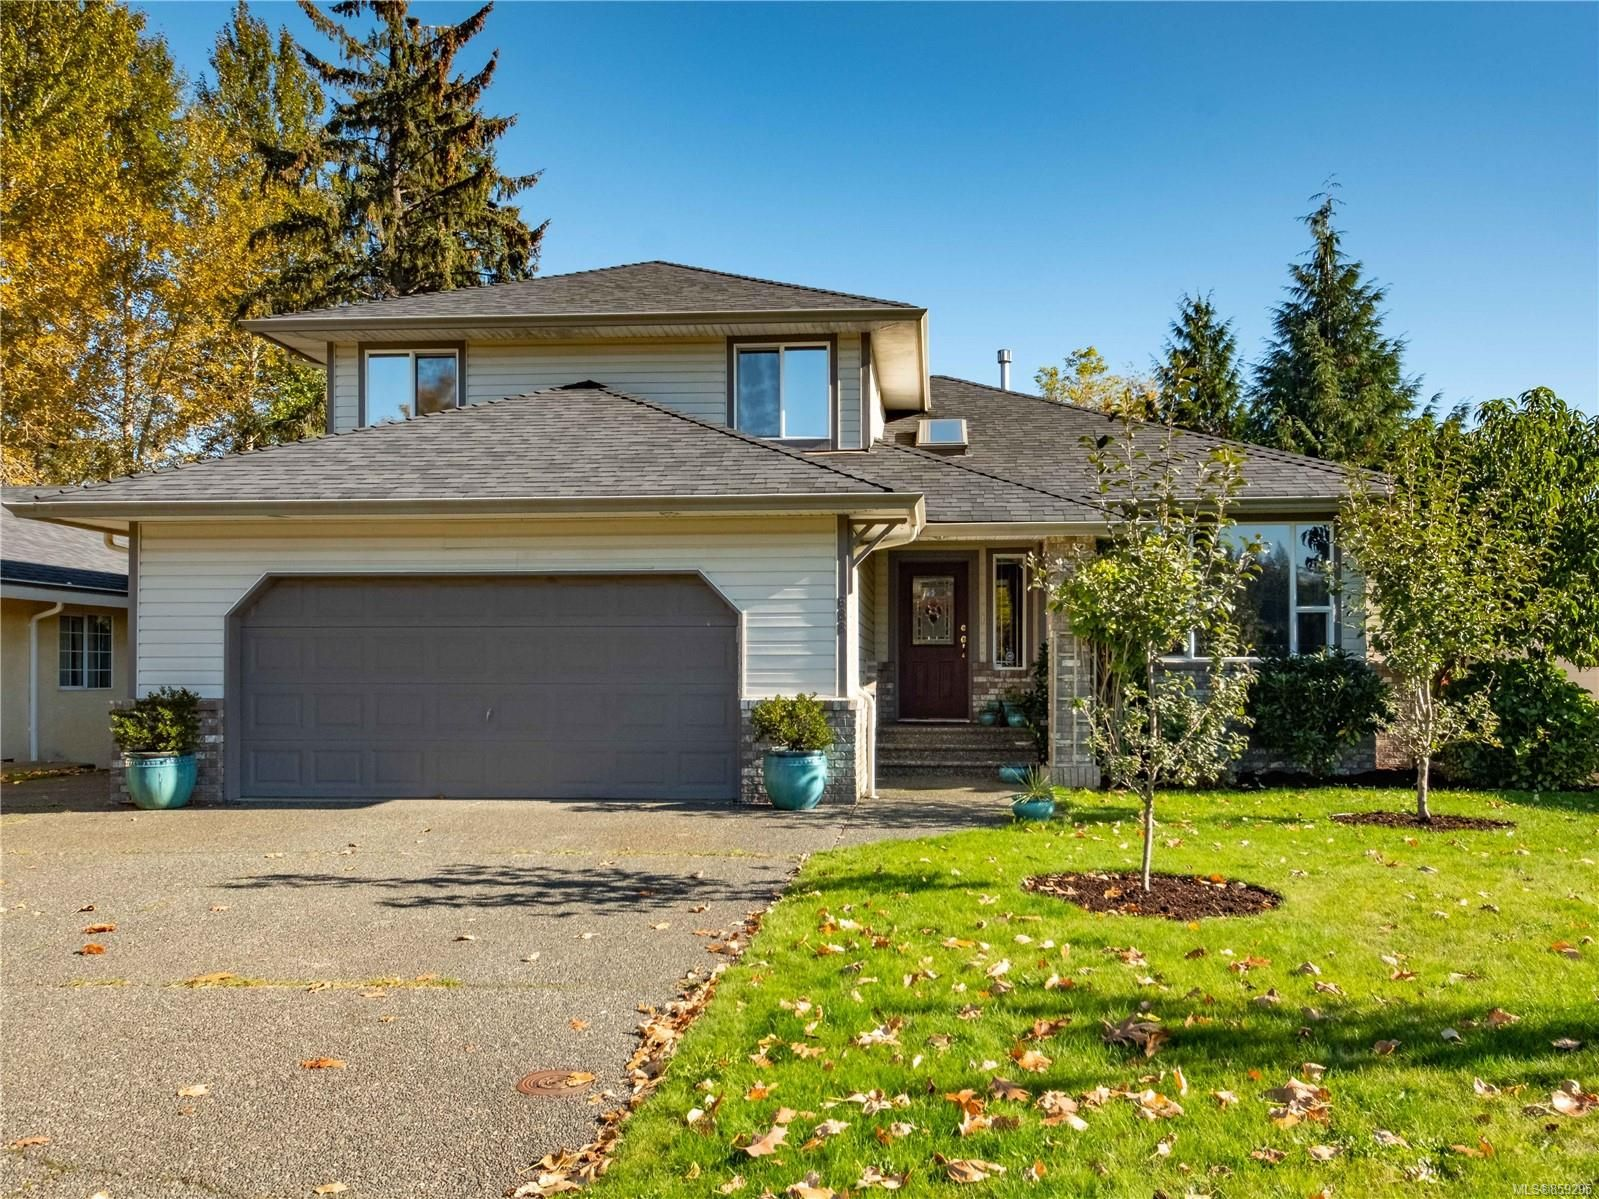 Main Photo: 688 Cambridge Dr in : CR Willow Point House for sale (Campbell River)  : MLS®# 859295